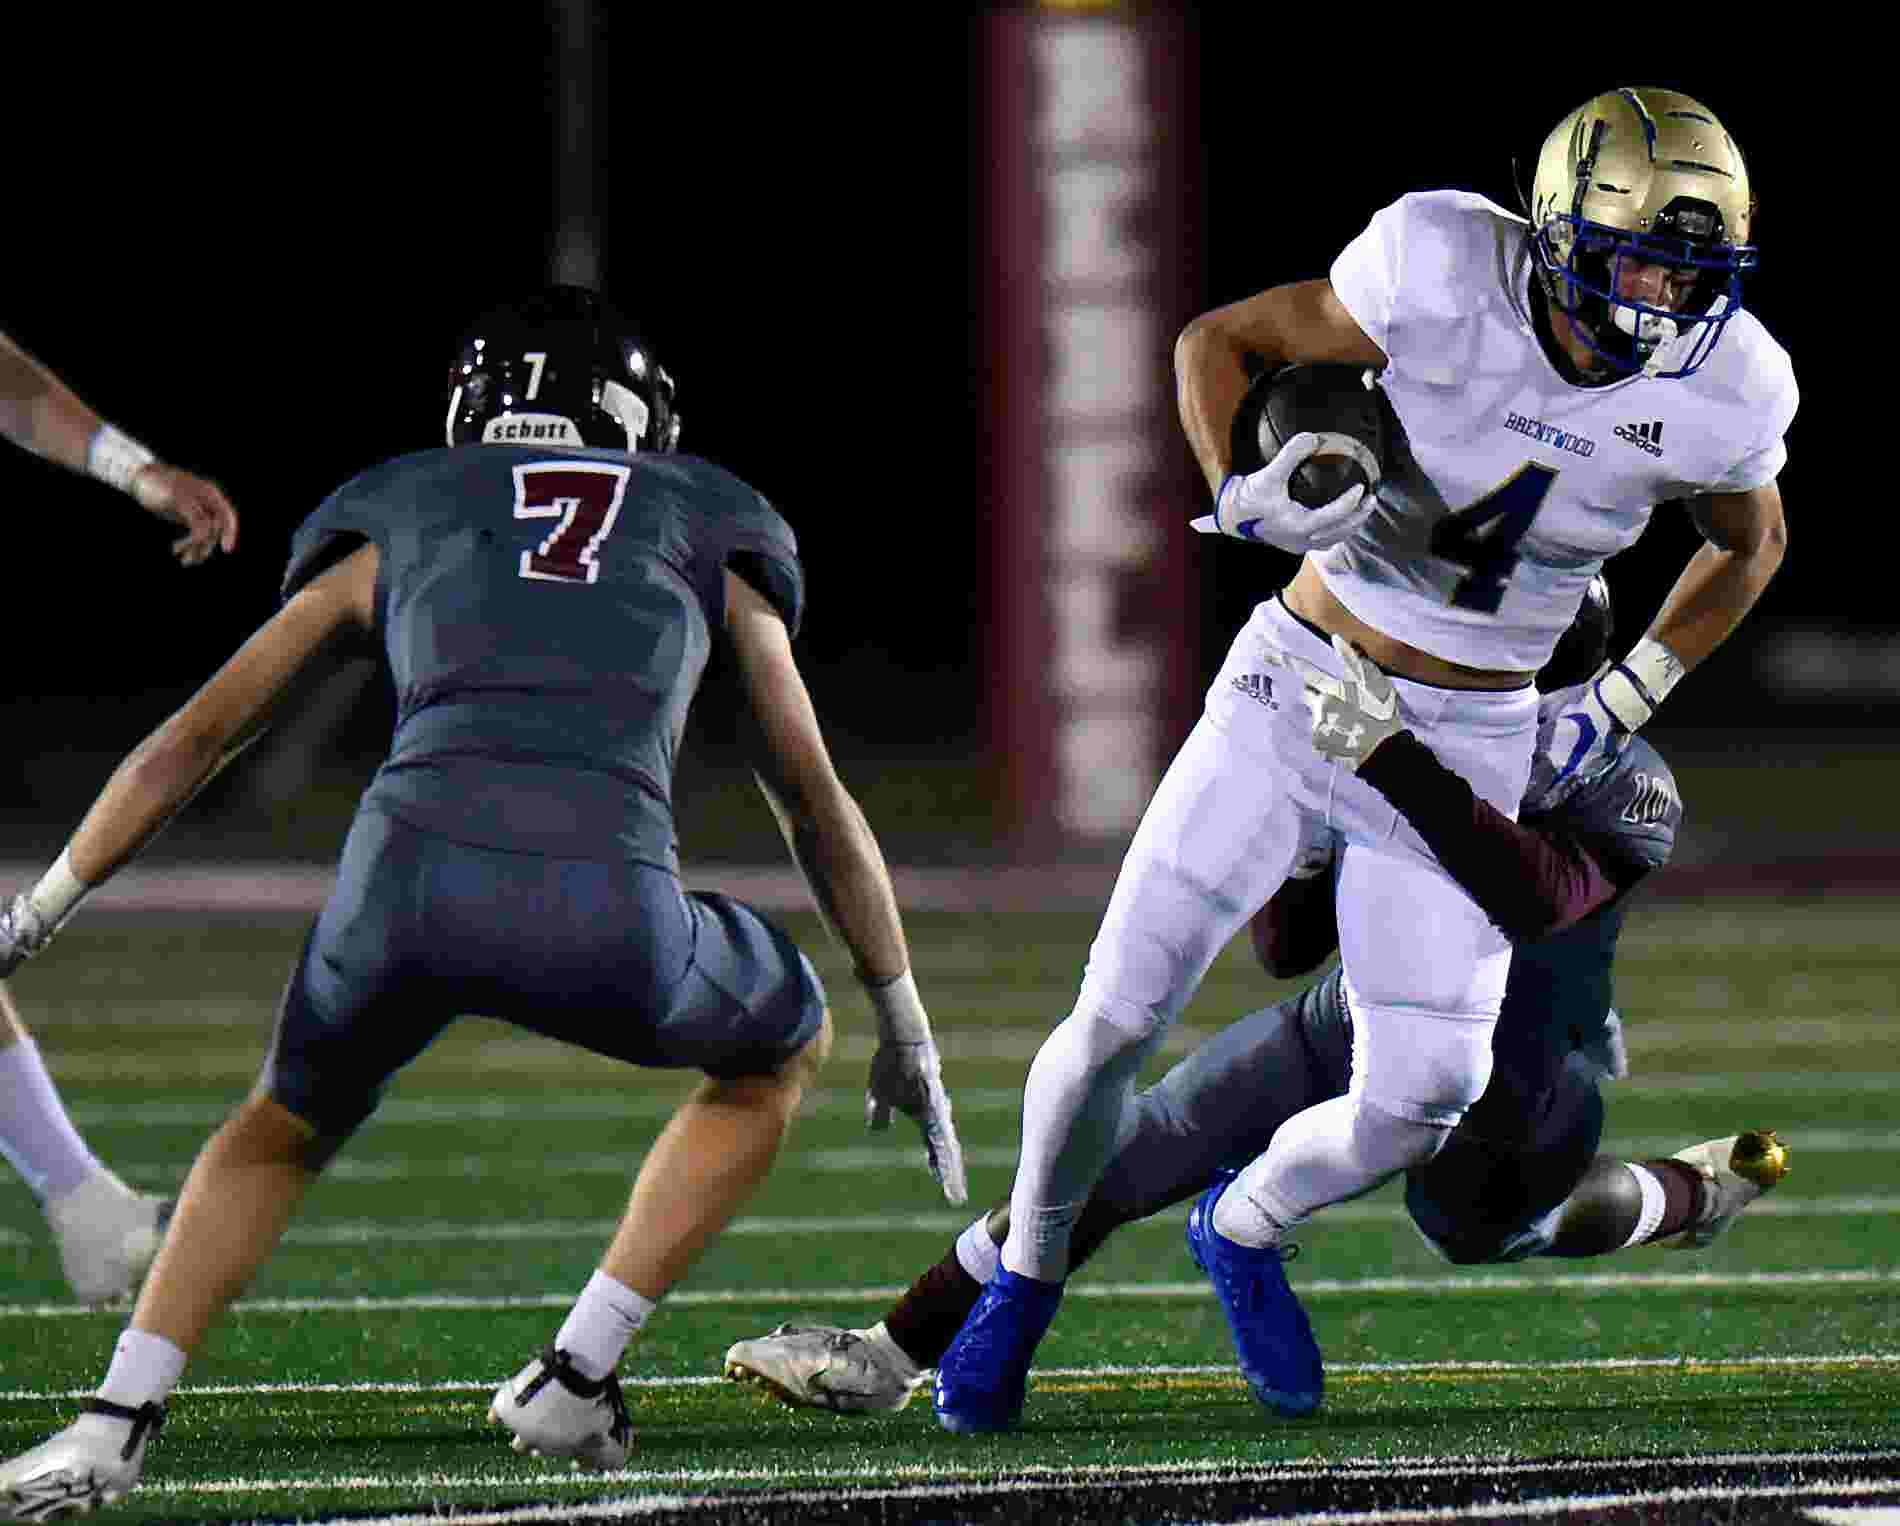 Vote for the Tennessean's boys high school athlete of the week for Oct. 14-19